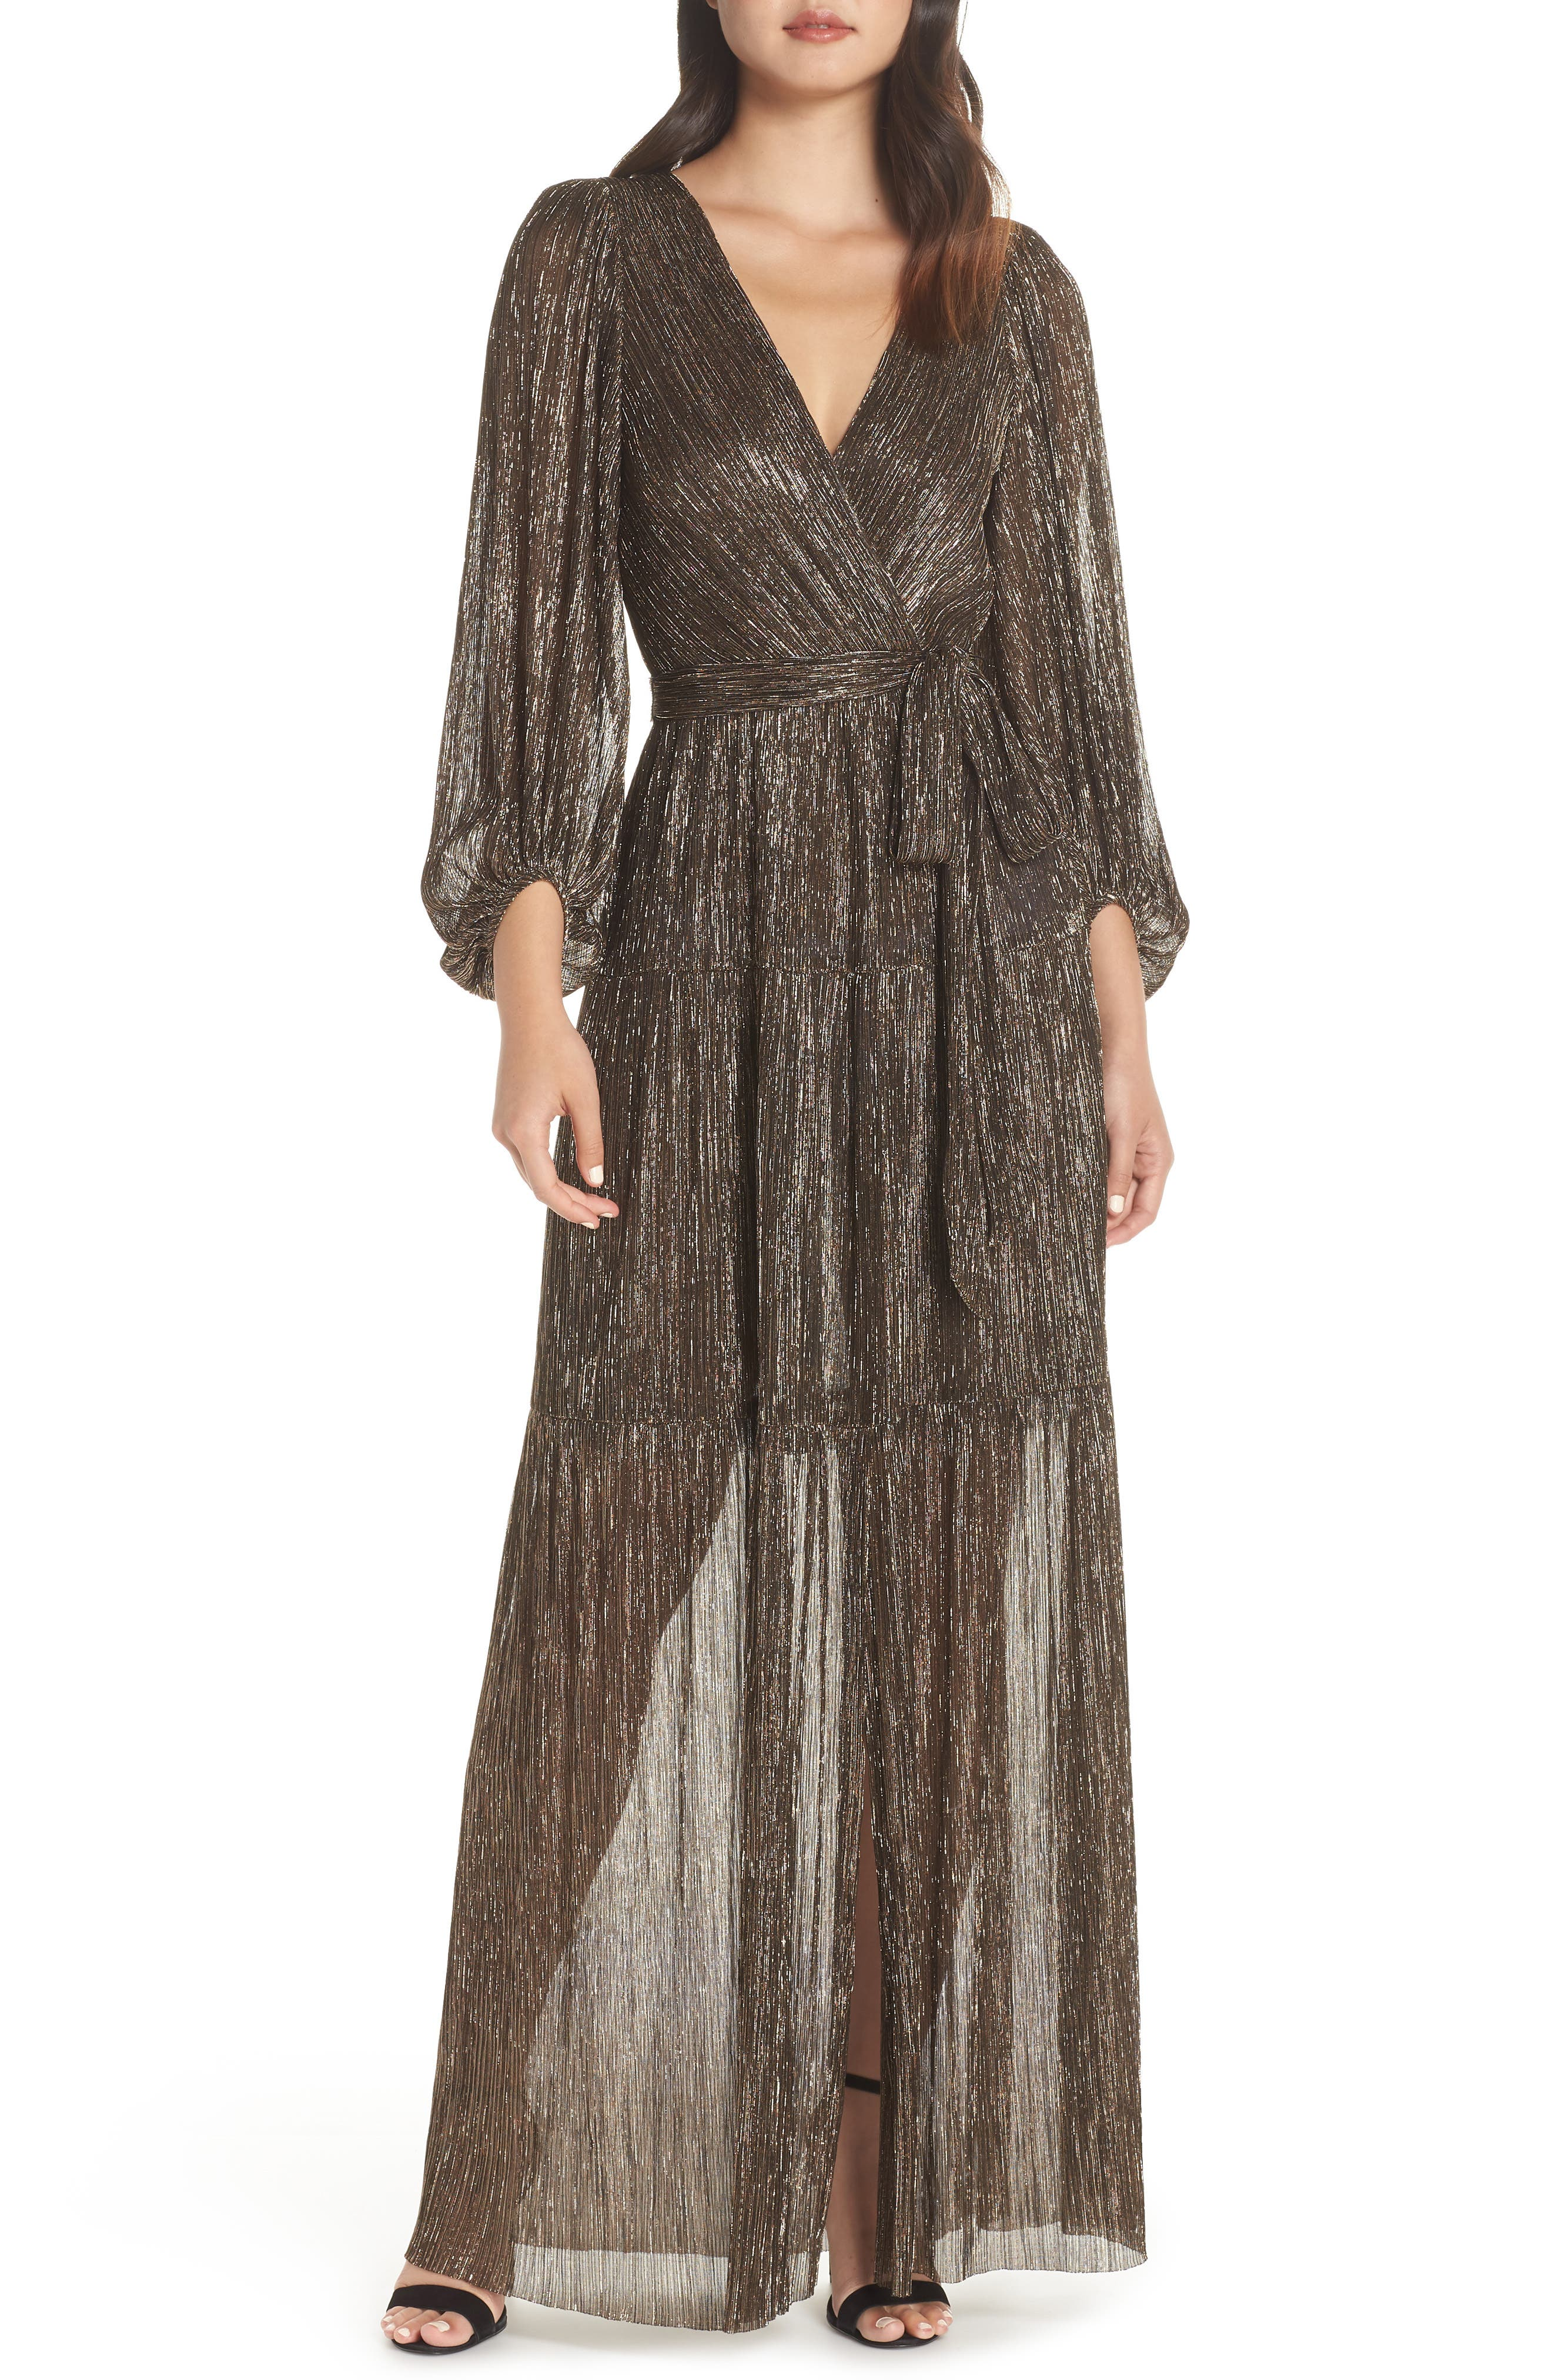 70s Prom, Formal, Evening, Party Dresses Womens Eliza J Backless Metallic Maxi Wrap Dress Size 2 - Metallic $168.00 AT vintagedancer.com